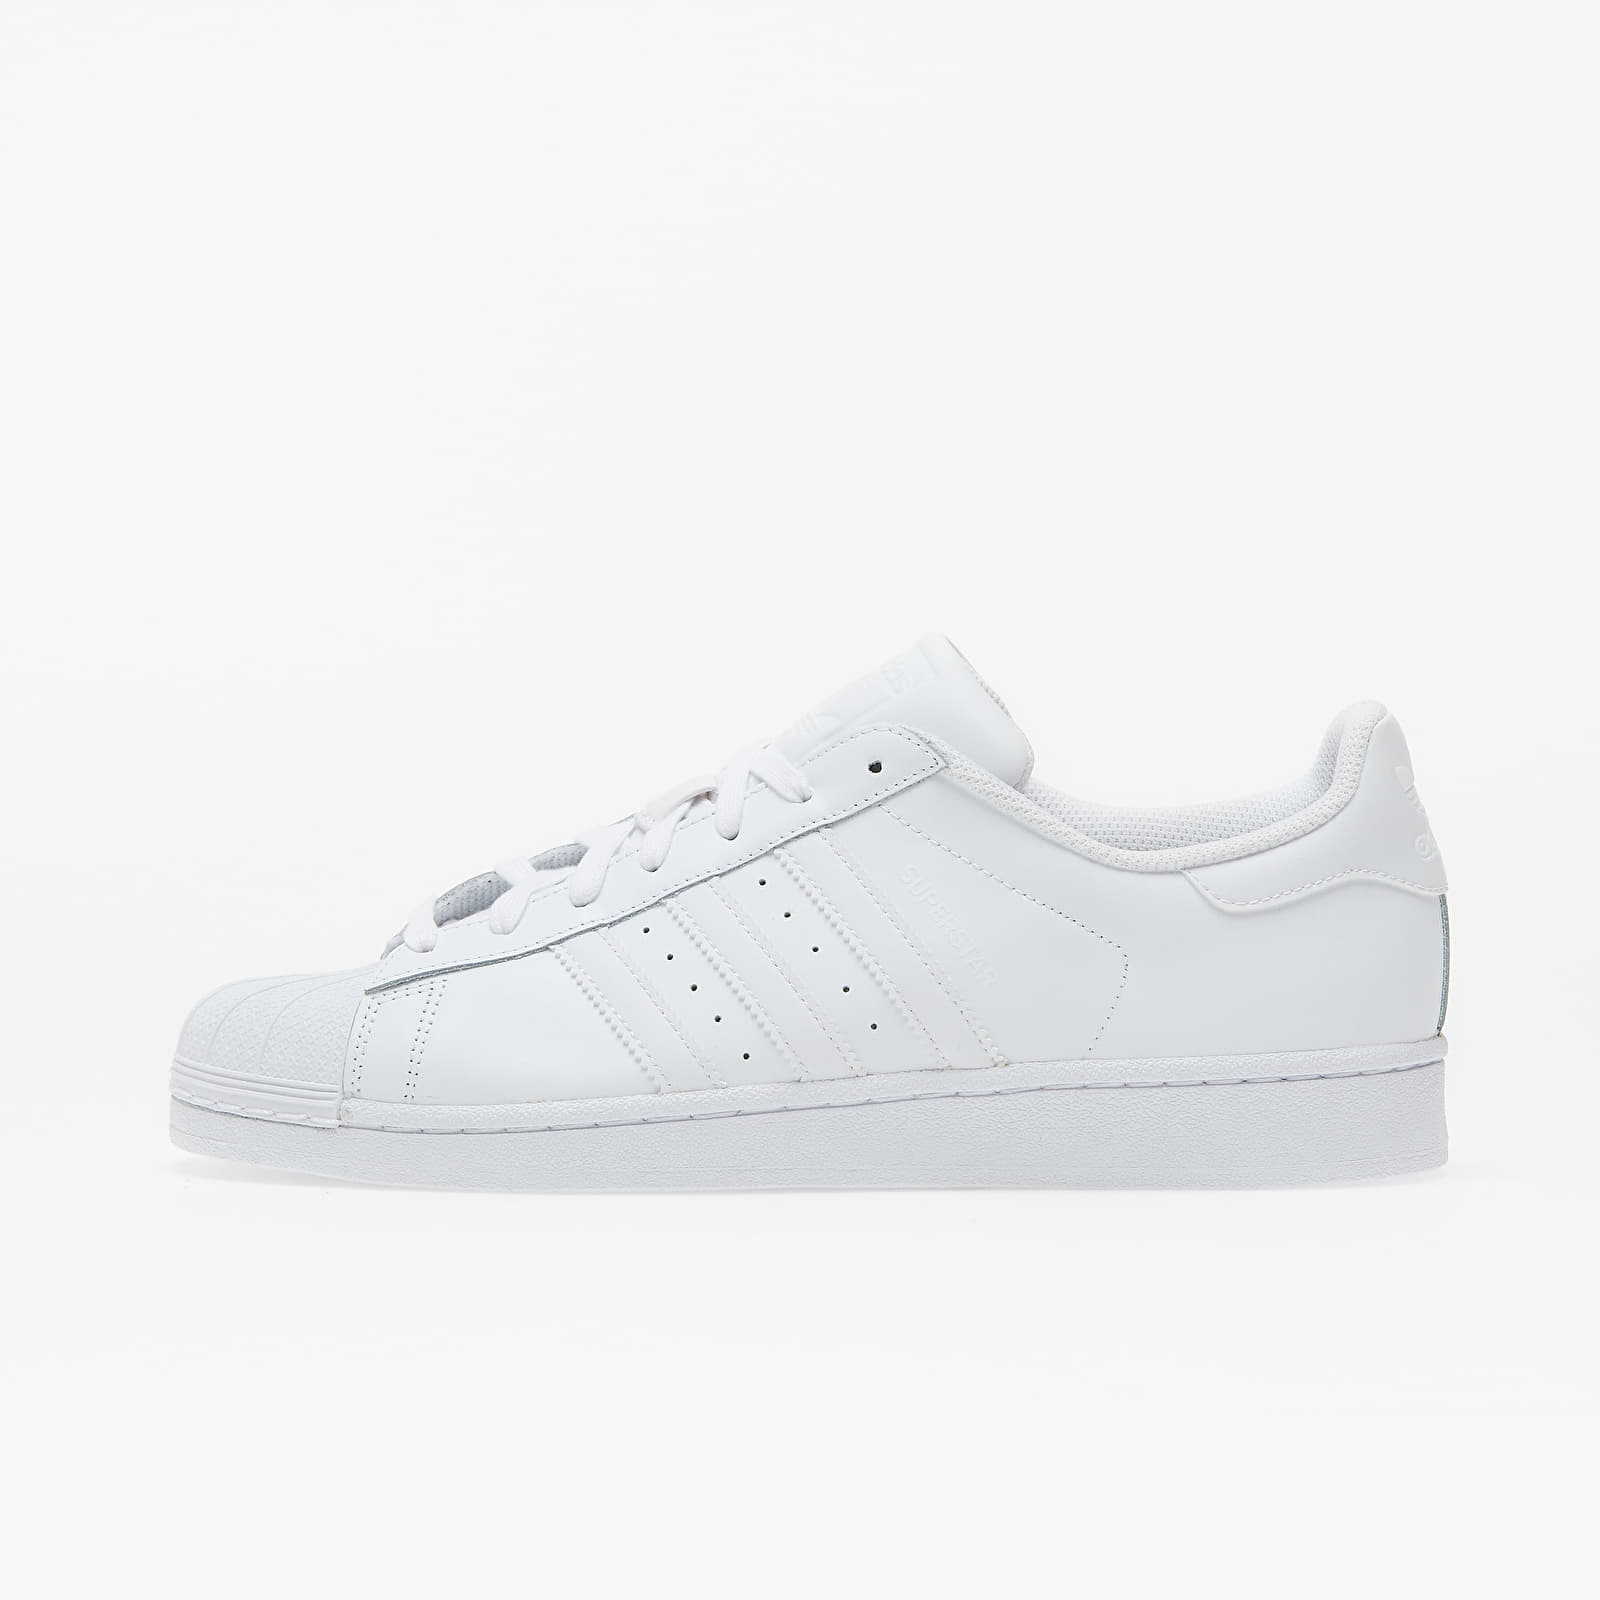 adidas Superstar Foundation Ftw White/ Ftw White/ Ftw White EUR 44